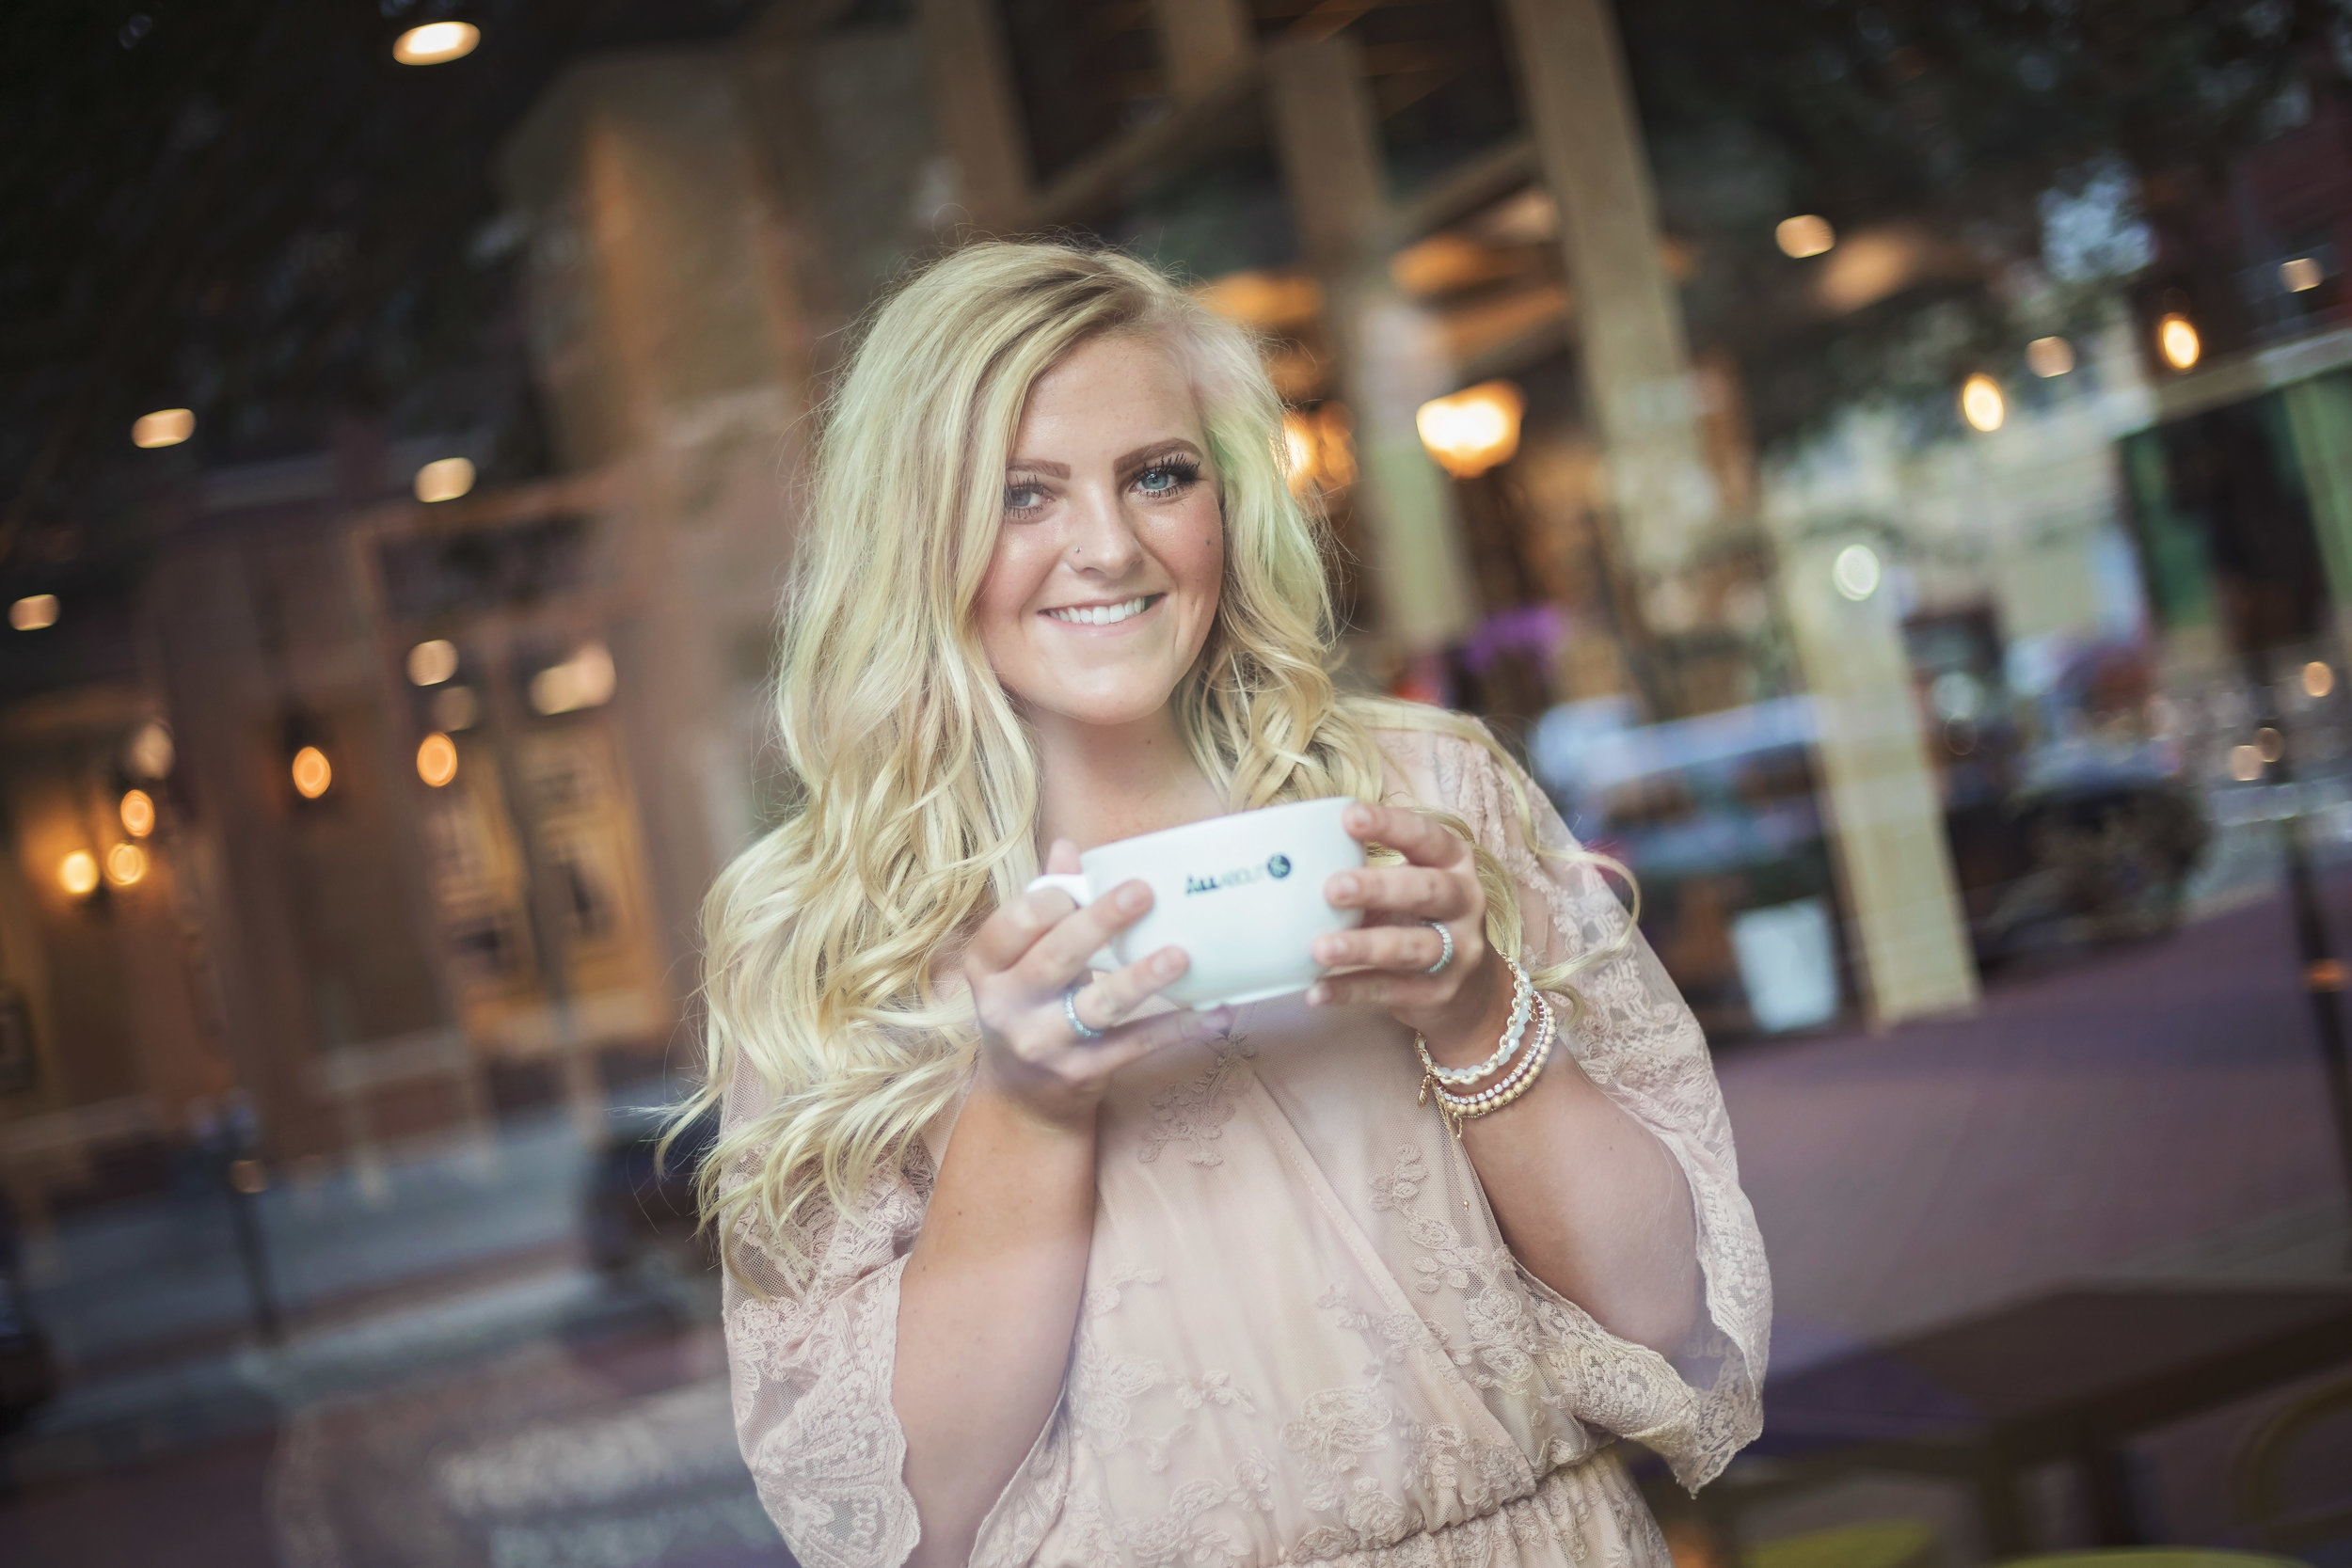 High School senior girl with long blonde hair sitting inside a coffee shop, holding a white coffee mug.